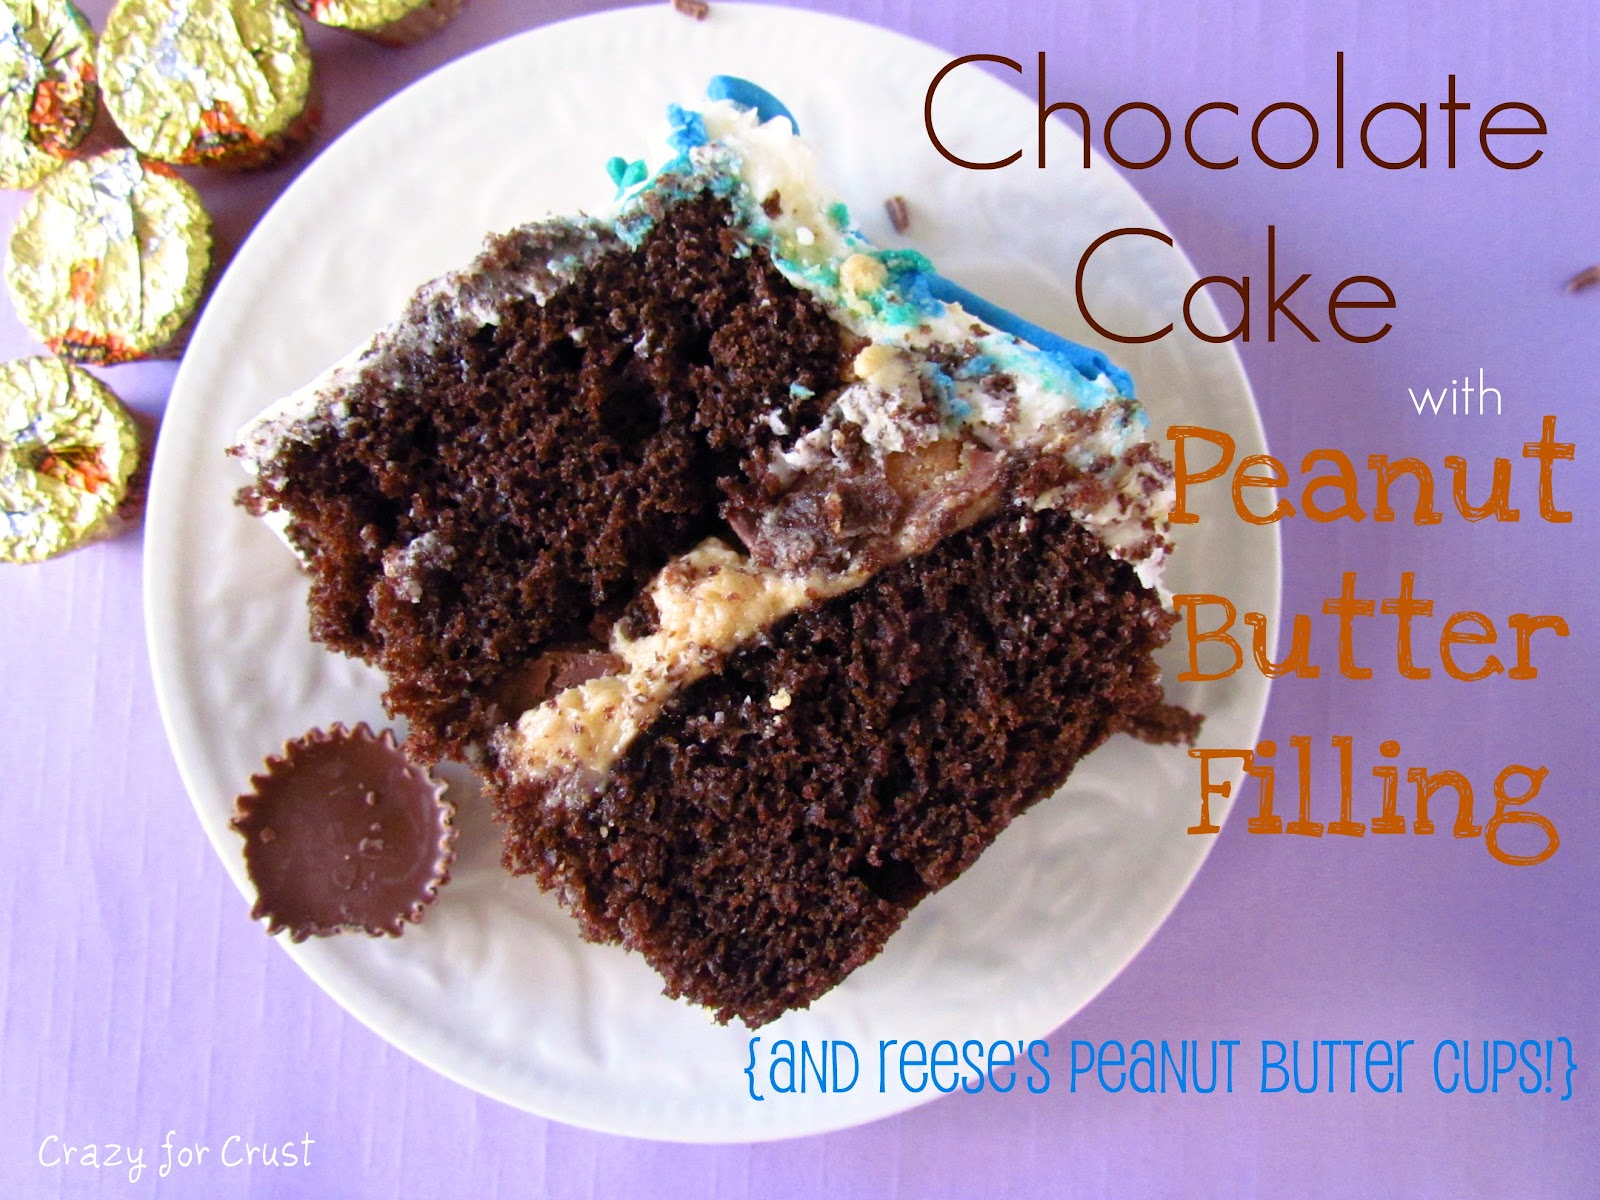 Chocolate Cake with Peanut Butter Filling - Crazy for Crust